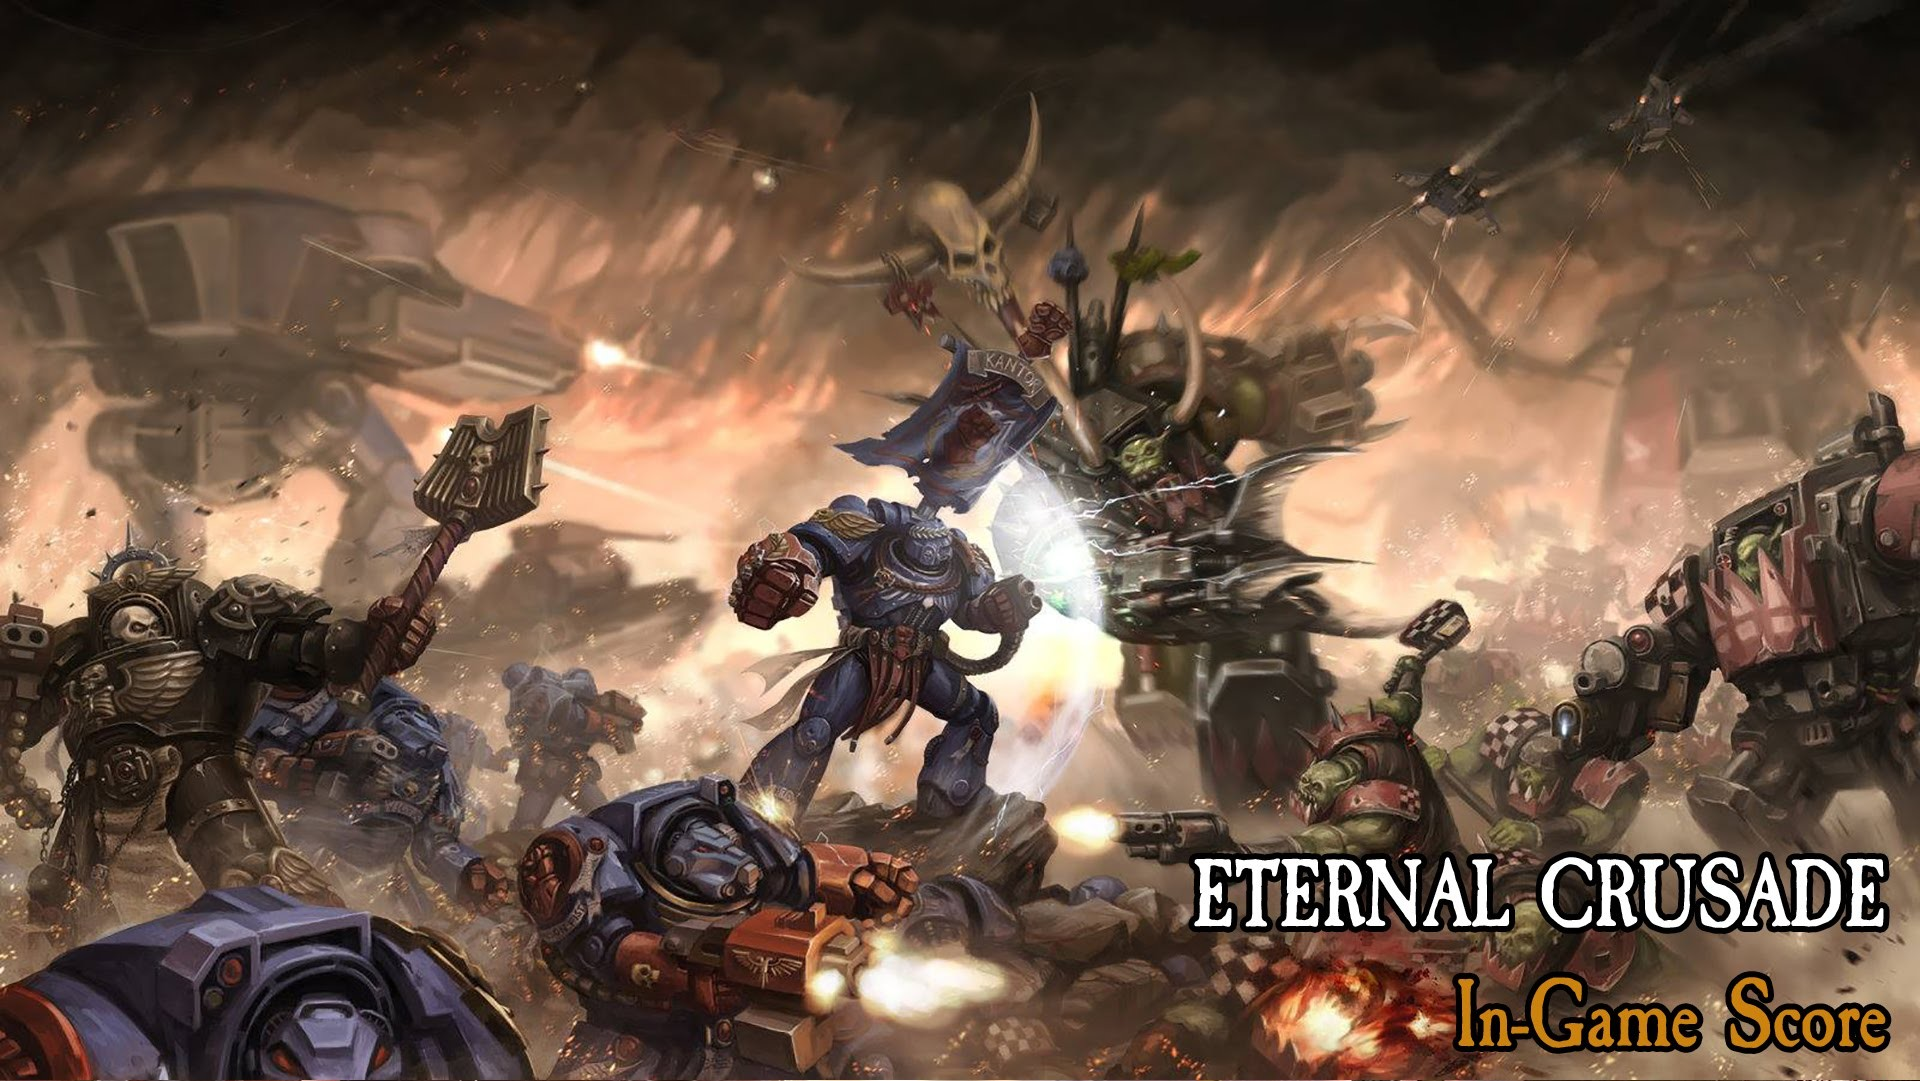 1920x1081 Warhammer 40k Eternal Crusade In-Game Soundtrack #6 - Orks Theme - YouTube